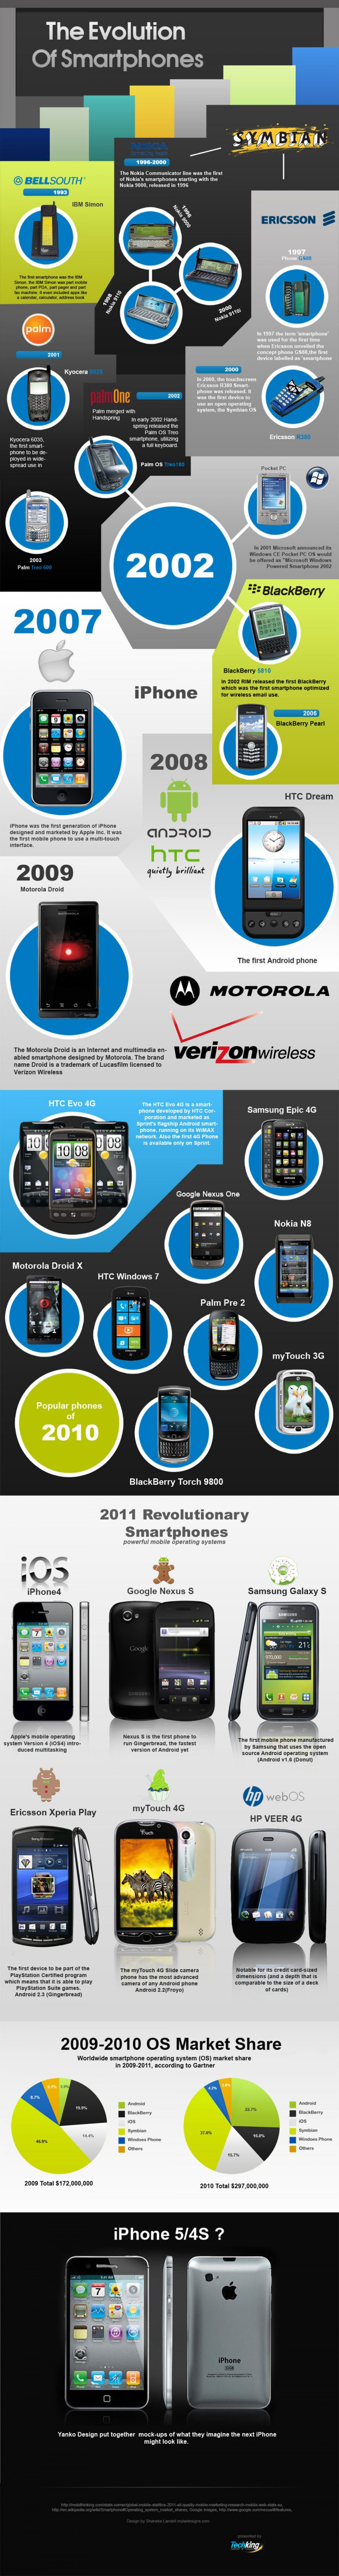 The evolution of smart phones